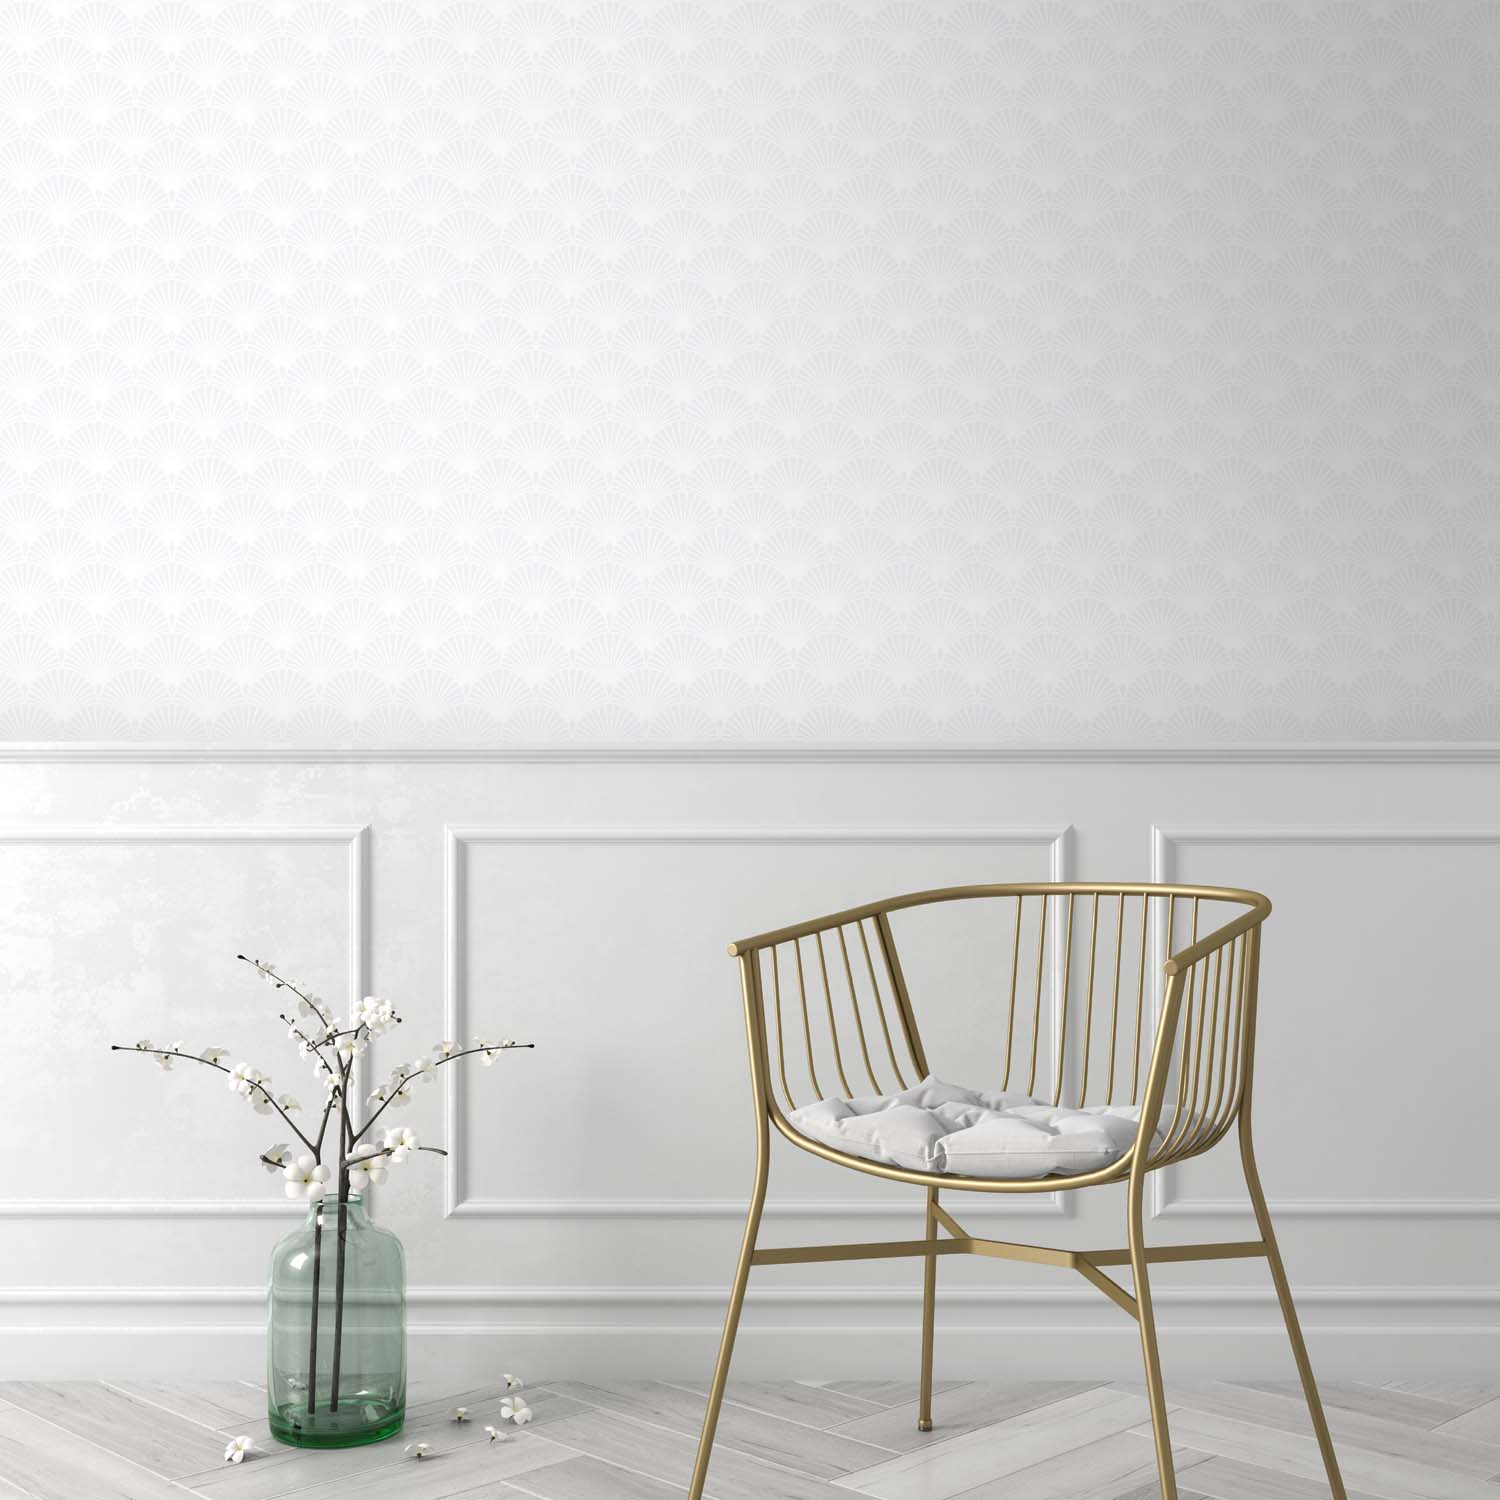 Art Deco Fan Tile Effect Geometric Wallpaper | Off White and Silver / White